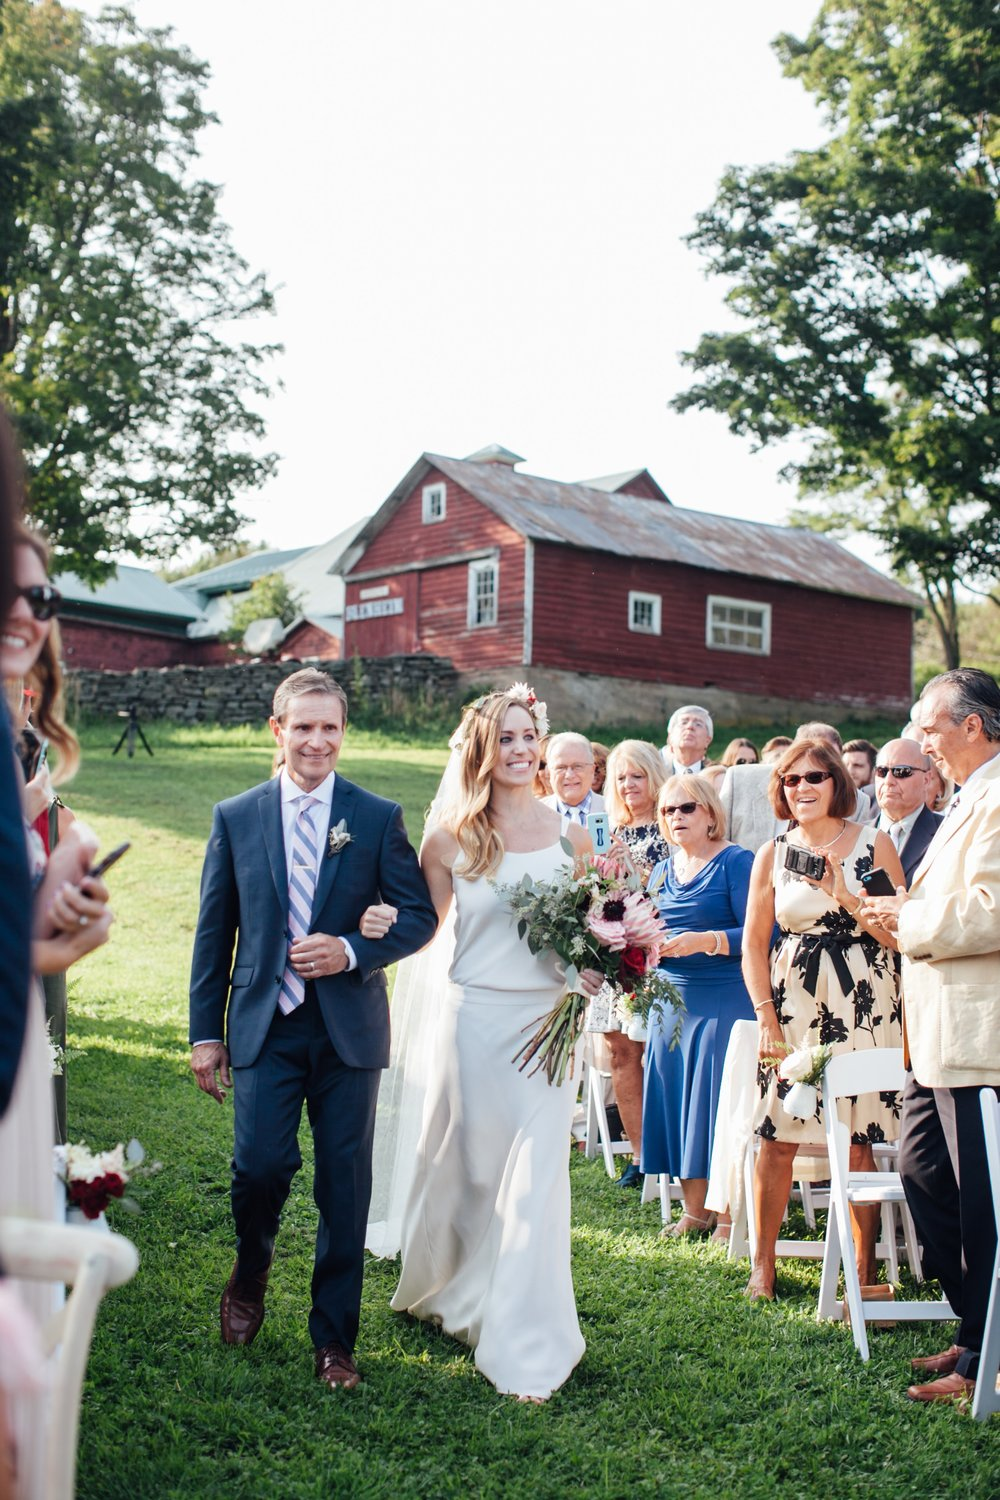 Courtney + Matt Blenheim Hill Farm Catskills NY Wedding Veronica Lola Photography 2017-375.jpg